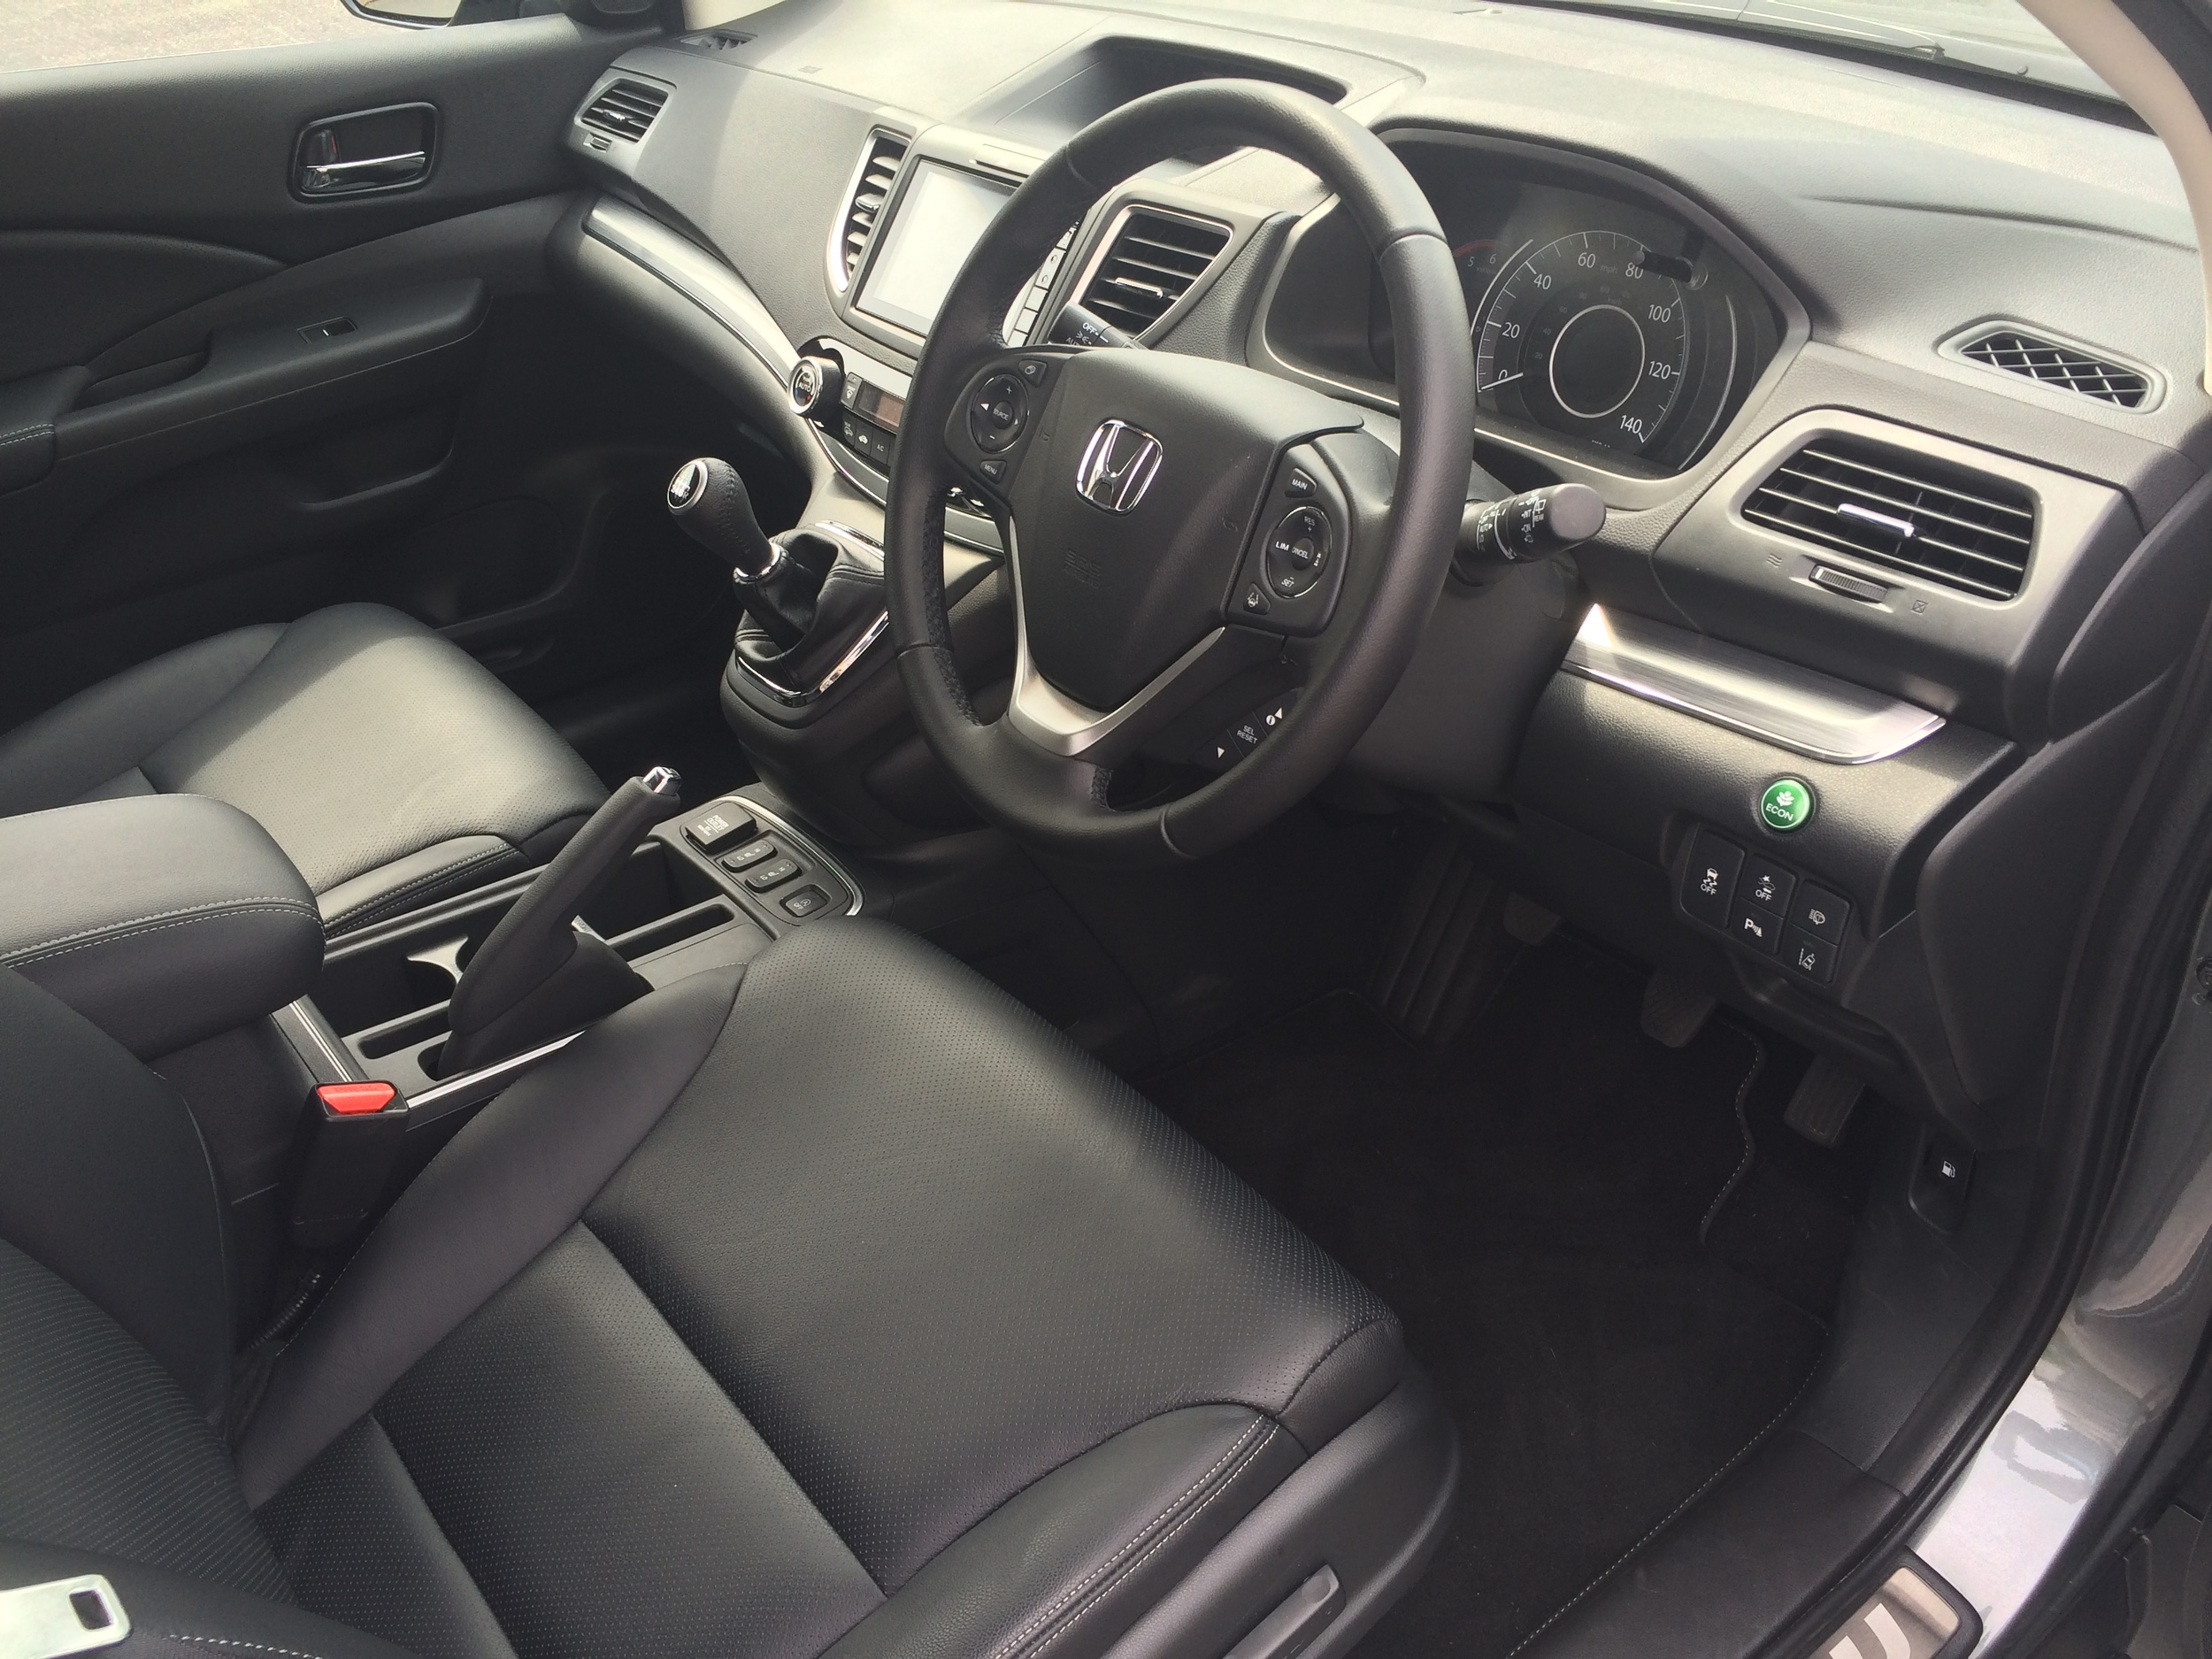 Spacious, comfortable and easy to use interior and controls